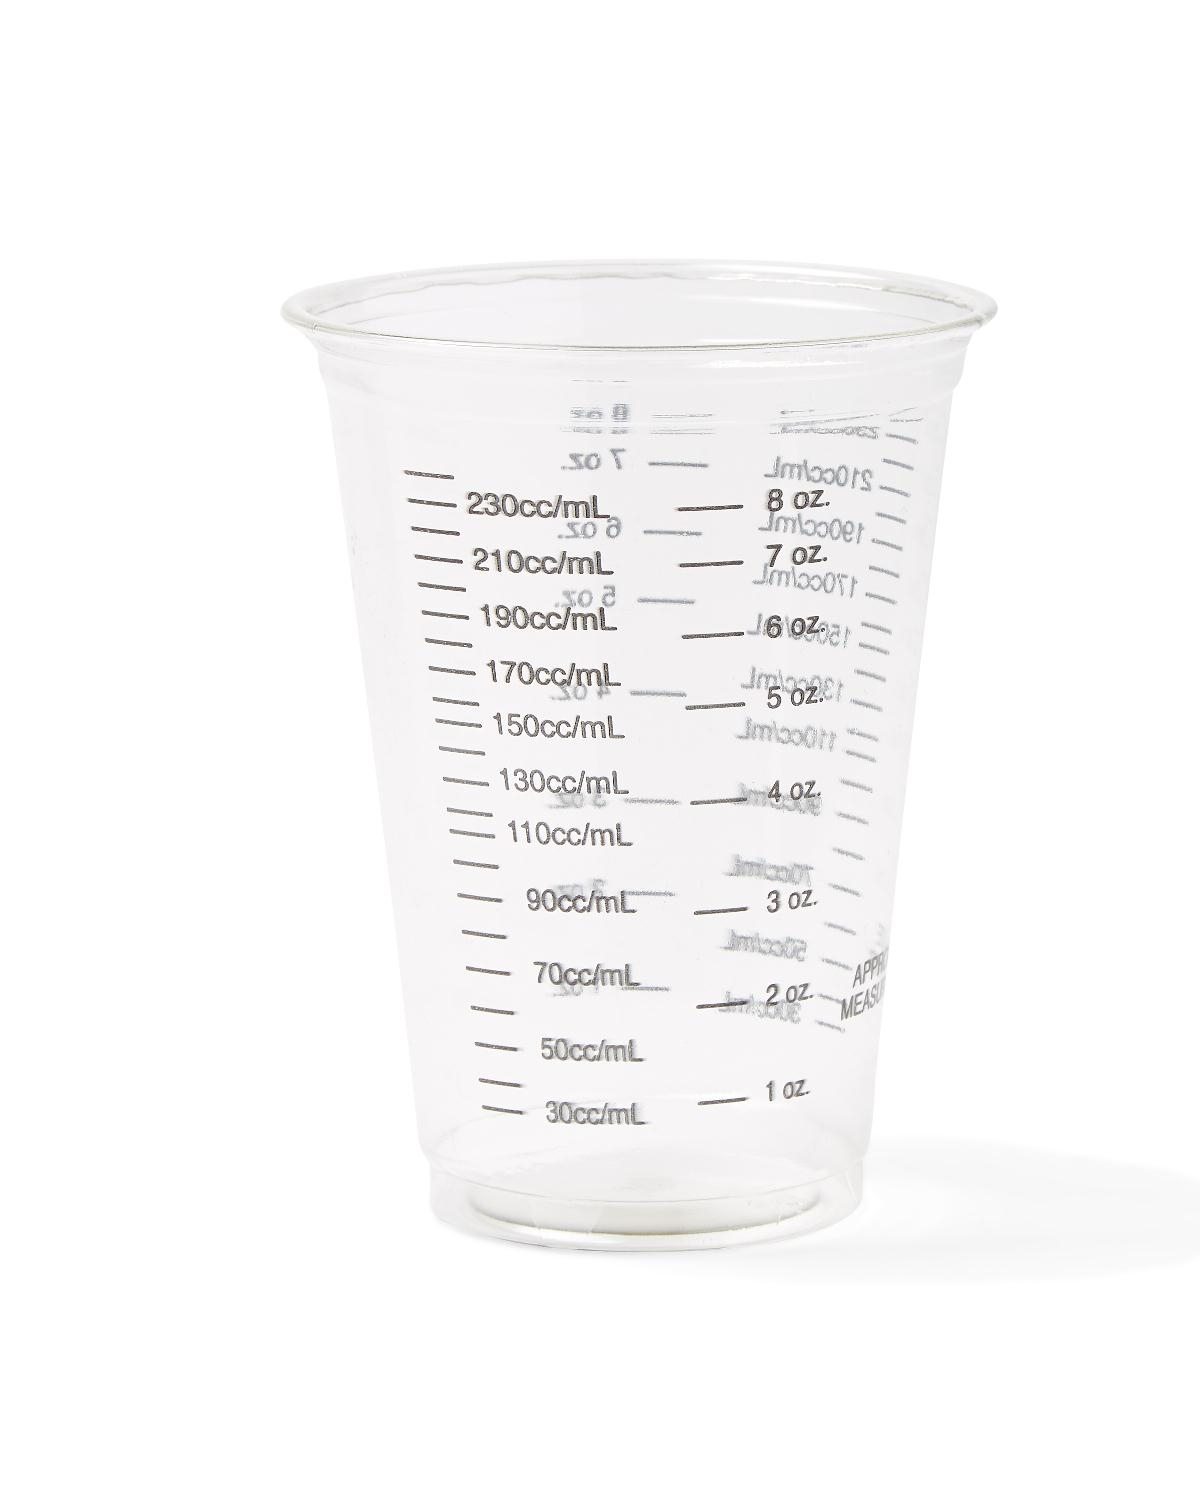 Nursing Supplies & Patient Care Food Service Drinking Cups & Glasses Cups & Glasses - Non03010barz - Cup Plastic Graduated 10 Ounce NON03010BARZ